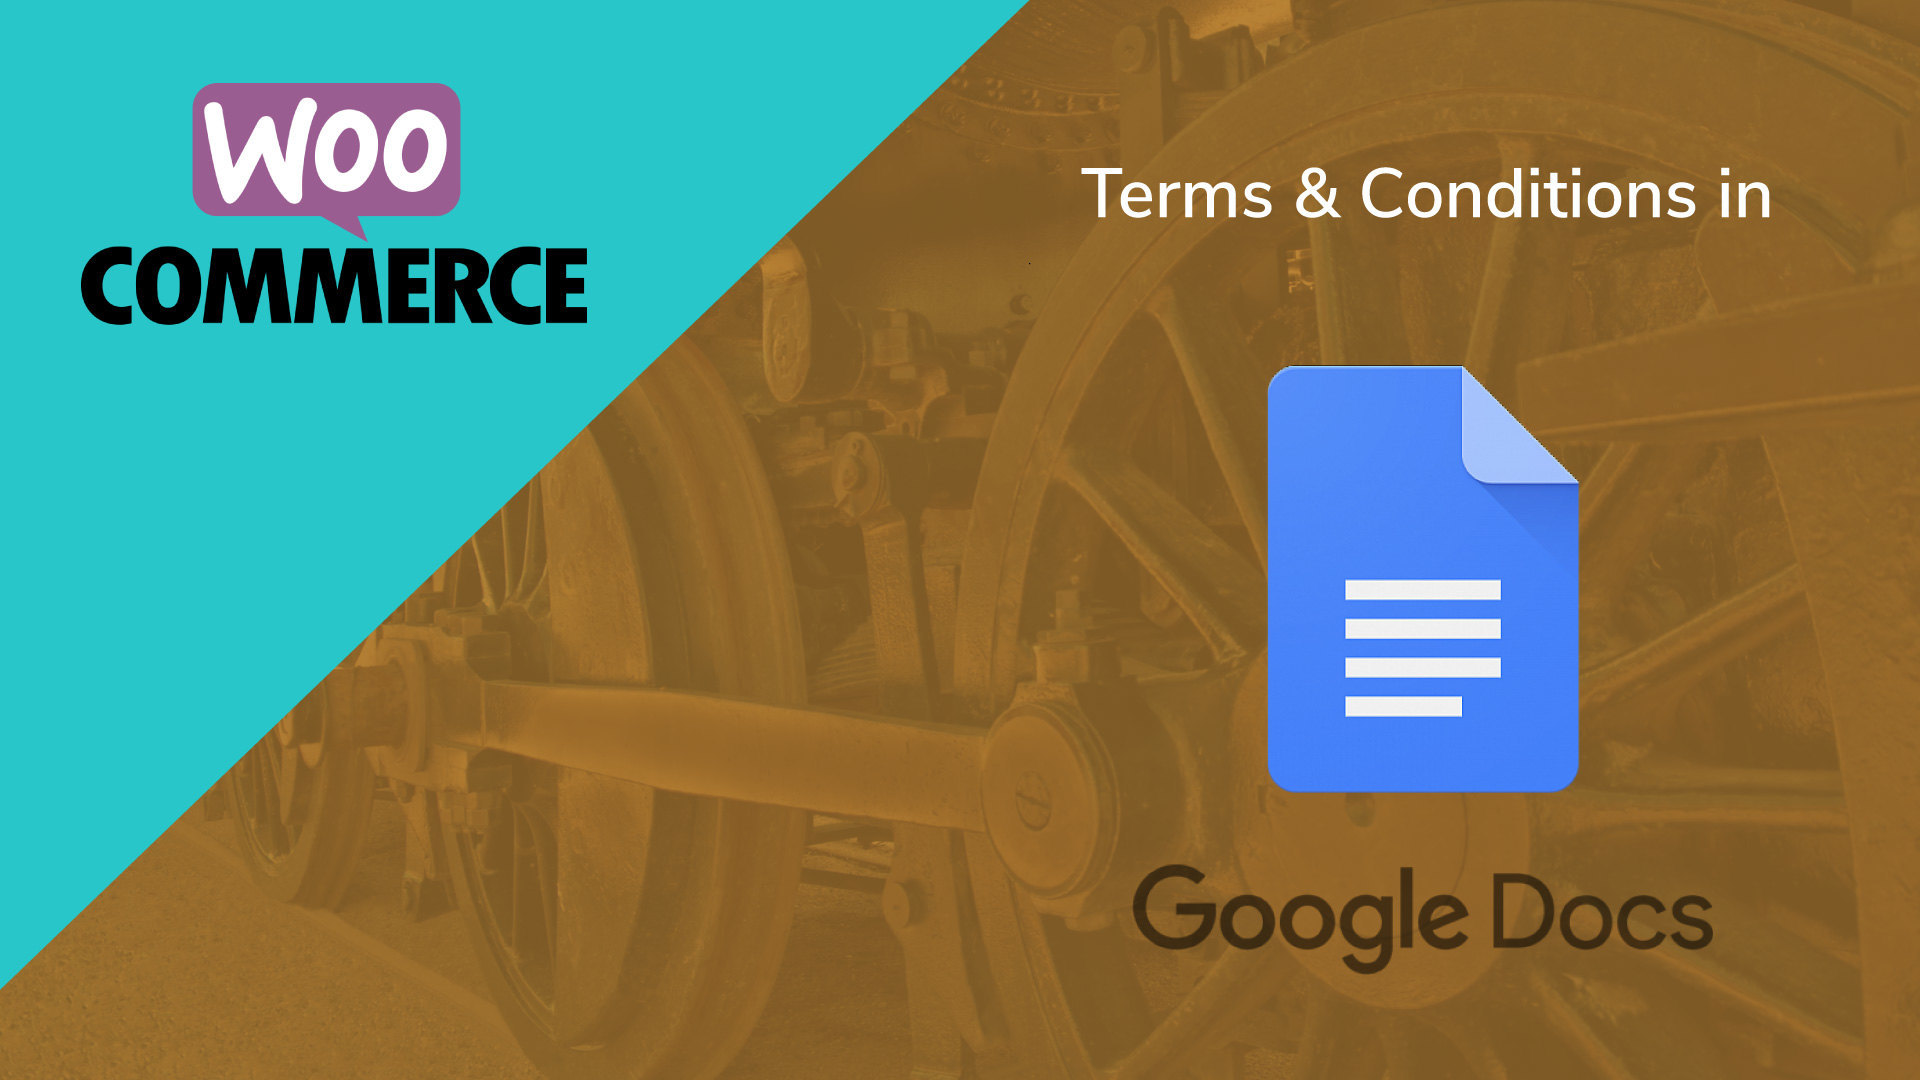 Use google docs for woocommerce terms conditions